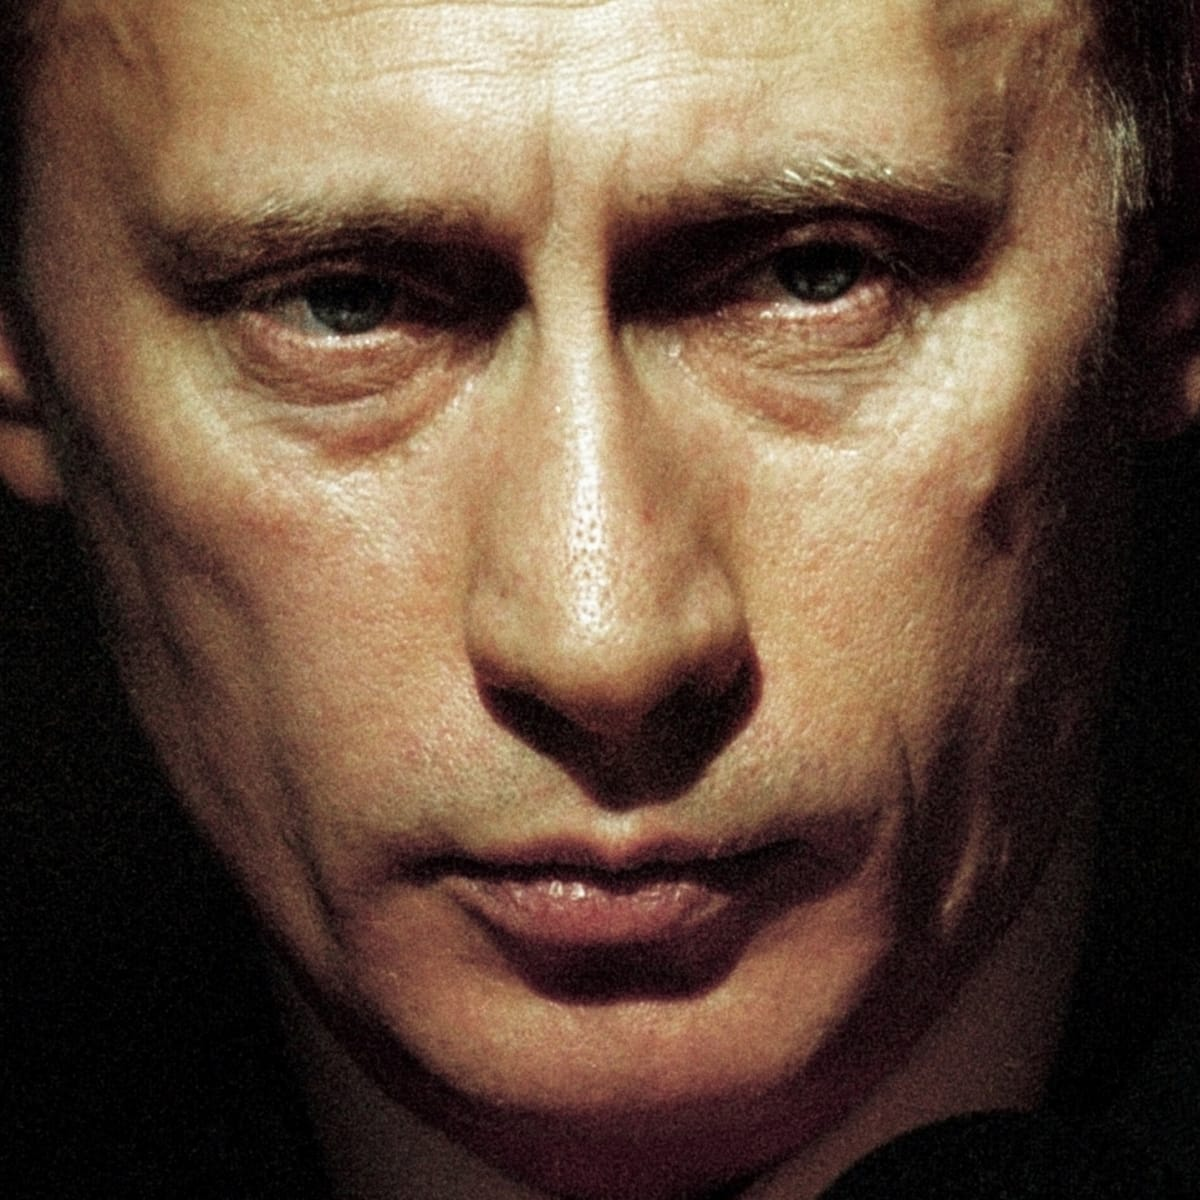 The Humiliation That Pushed Putin To Try And Recapture Russian Glory History